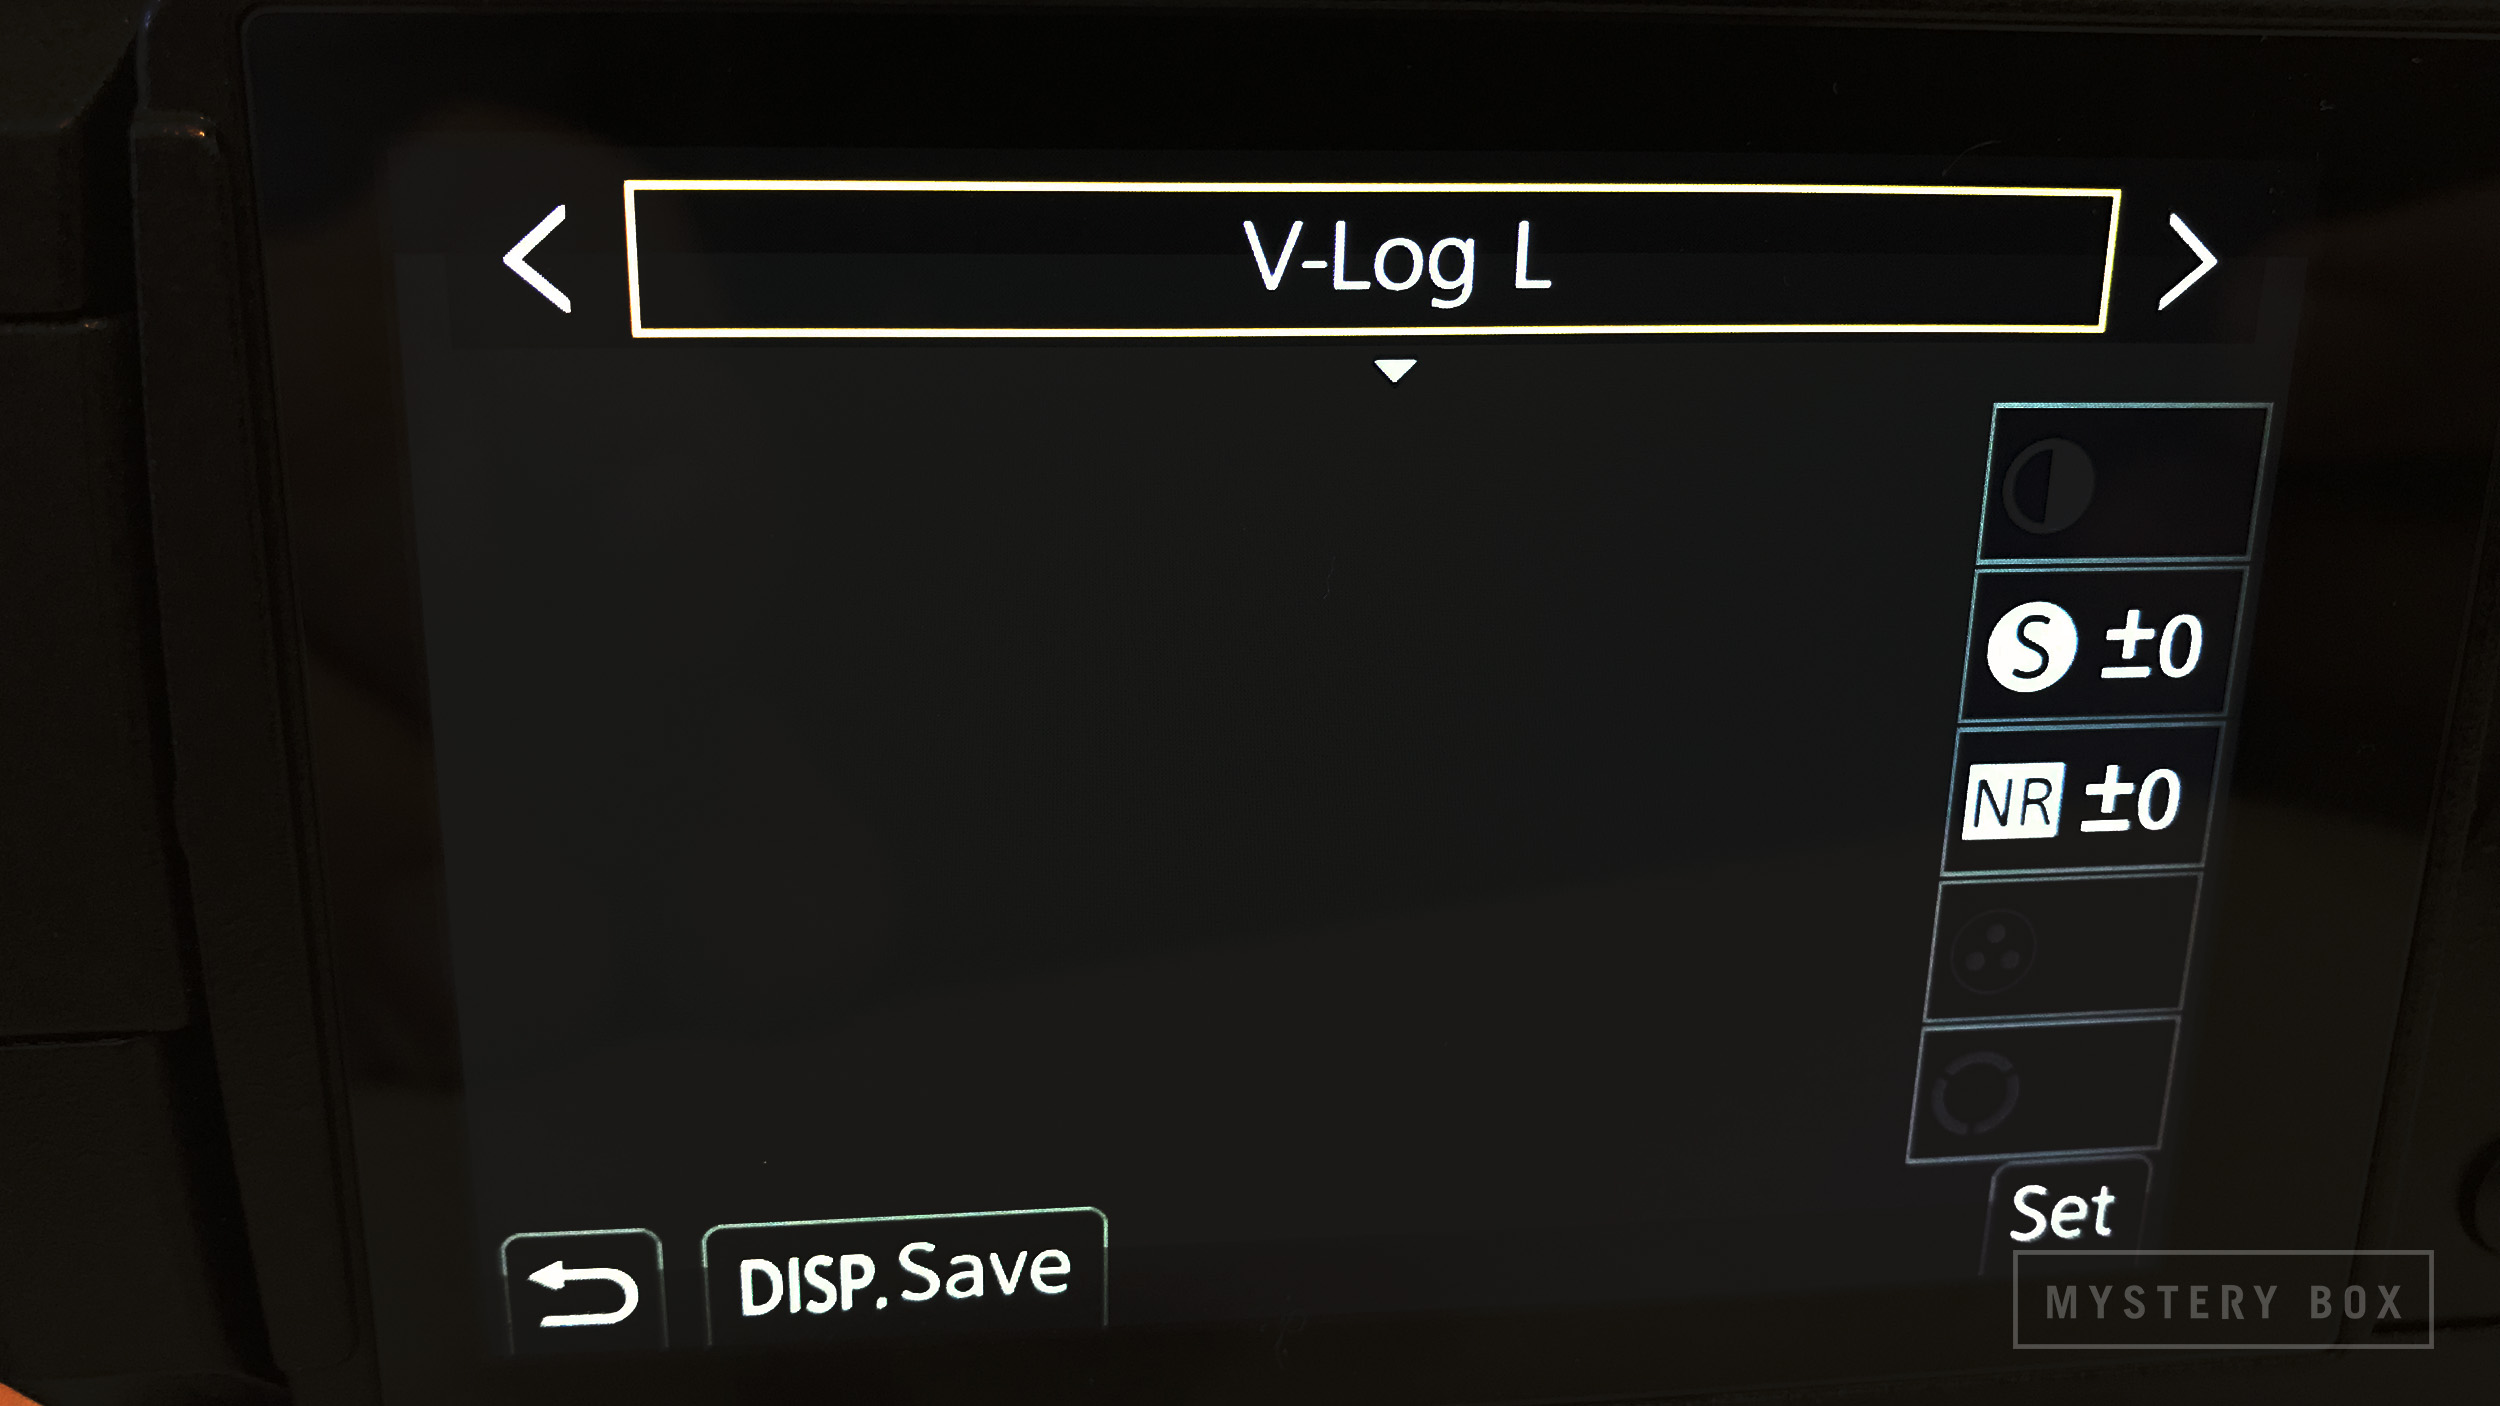 - Set the GH5S to use V-Log L color science by setting the Picture Style to V-Log L in the Picture Style menu (Menu -> Motion Picture -> Picture Style)